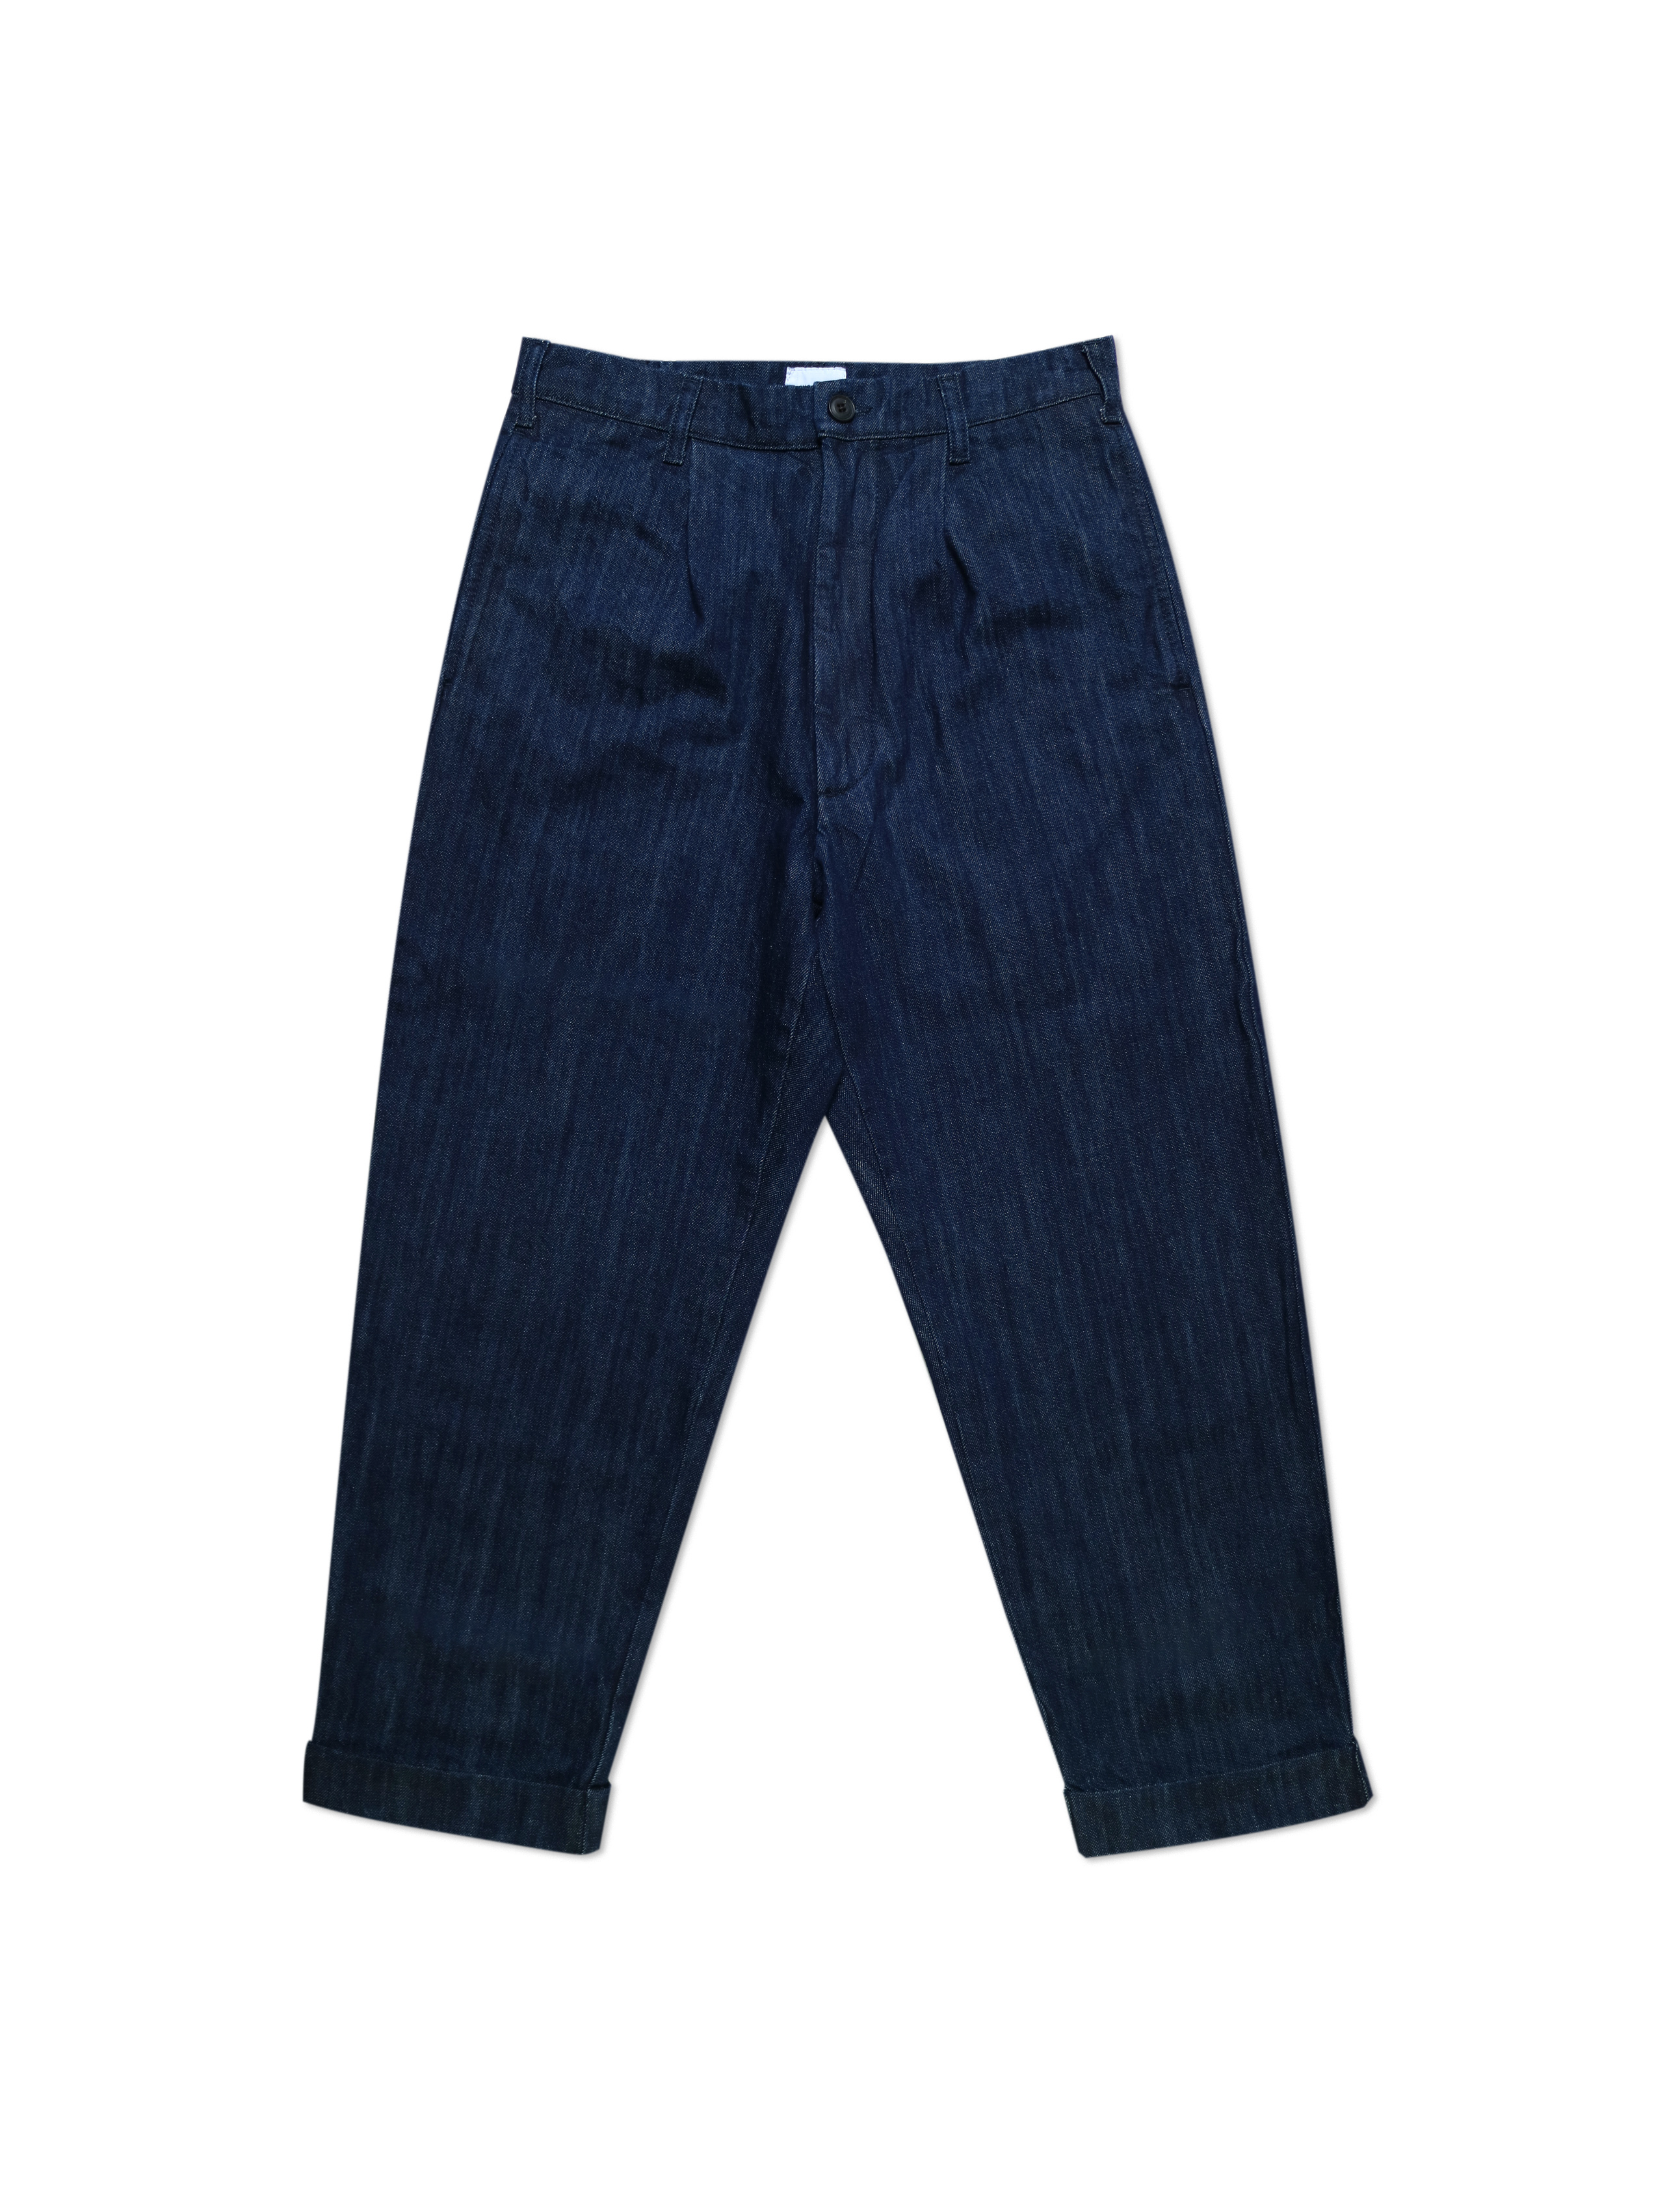 Jeans Vintage Raw | Wooden Store